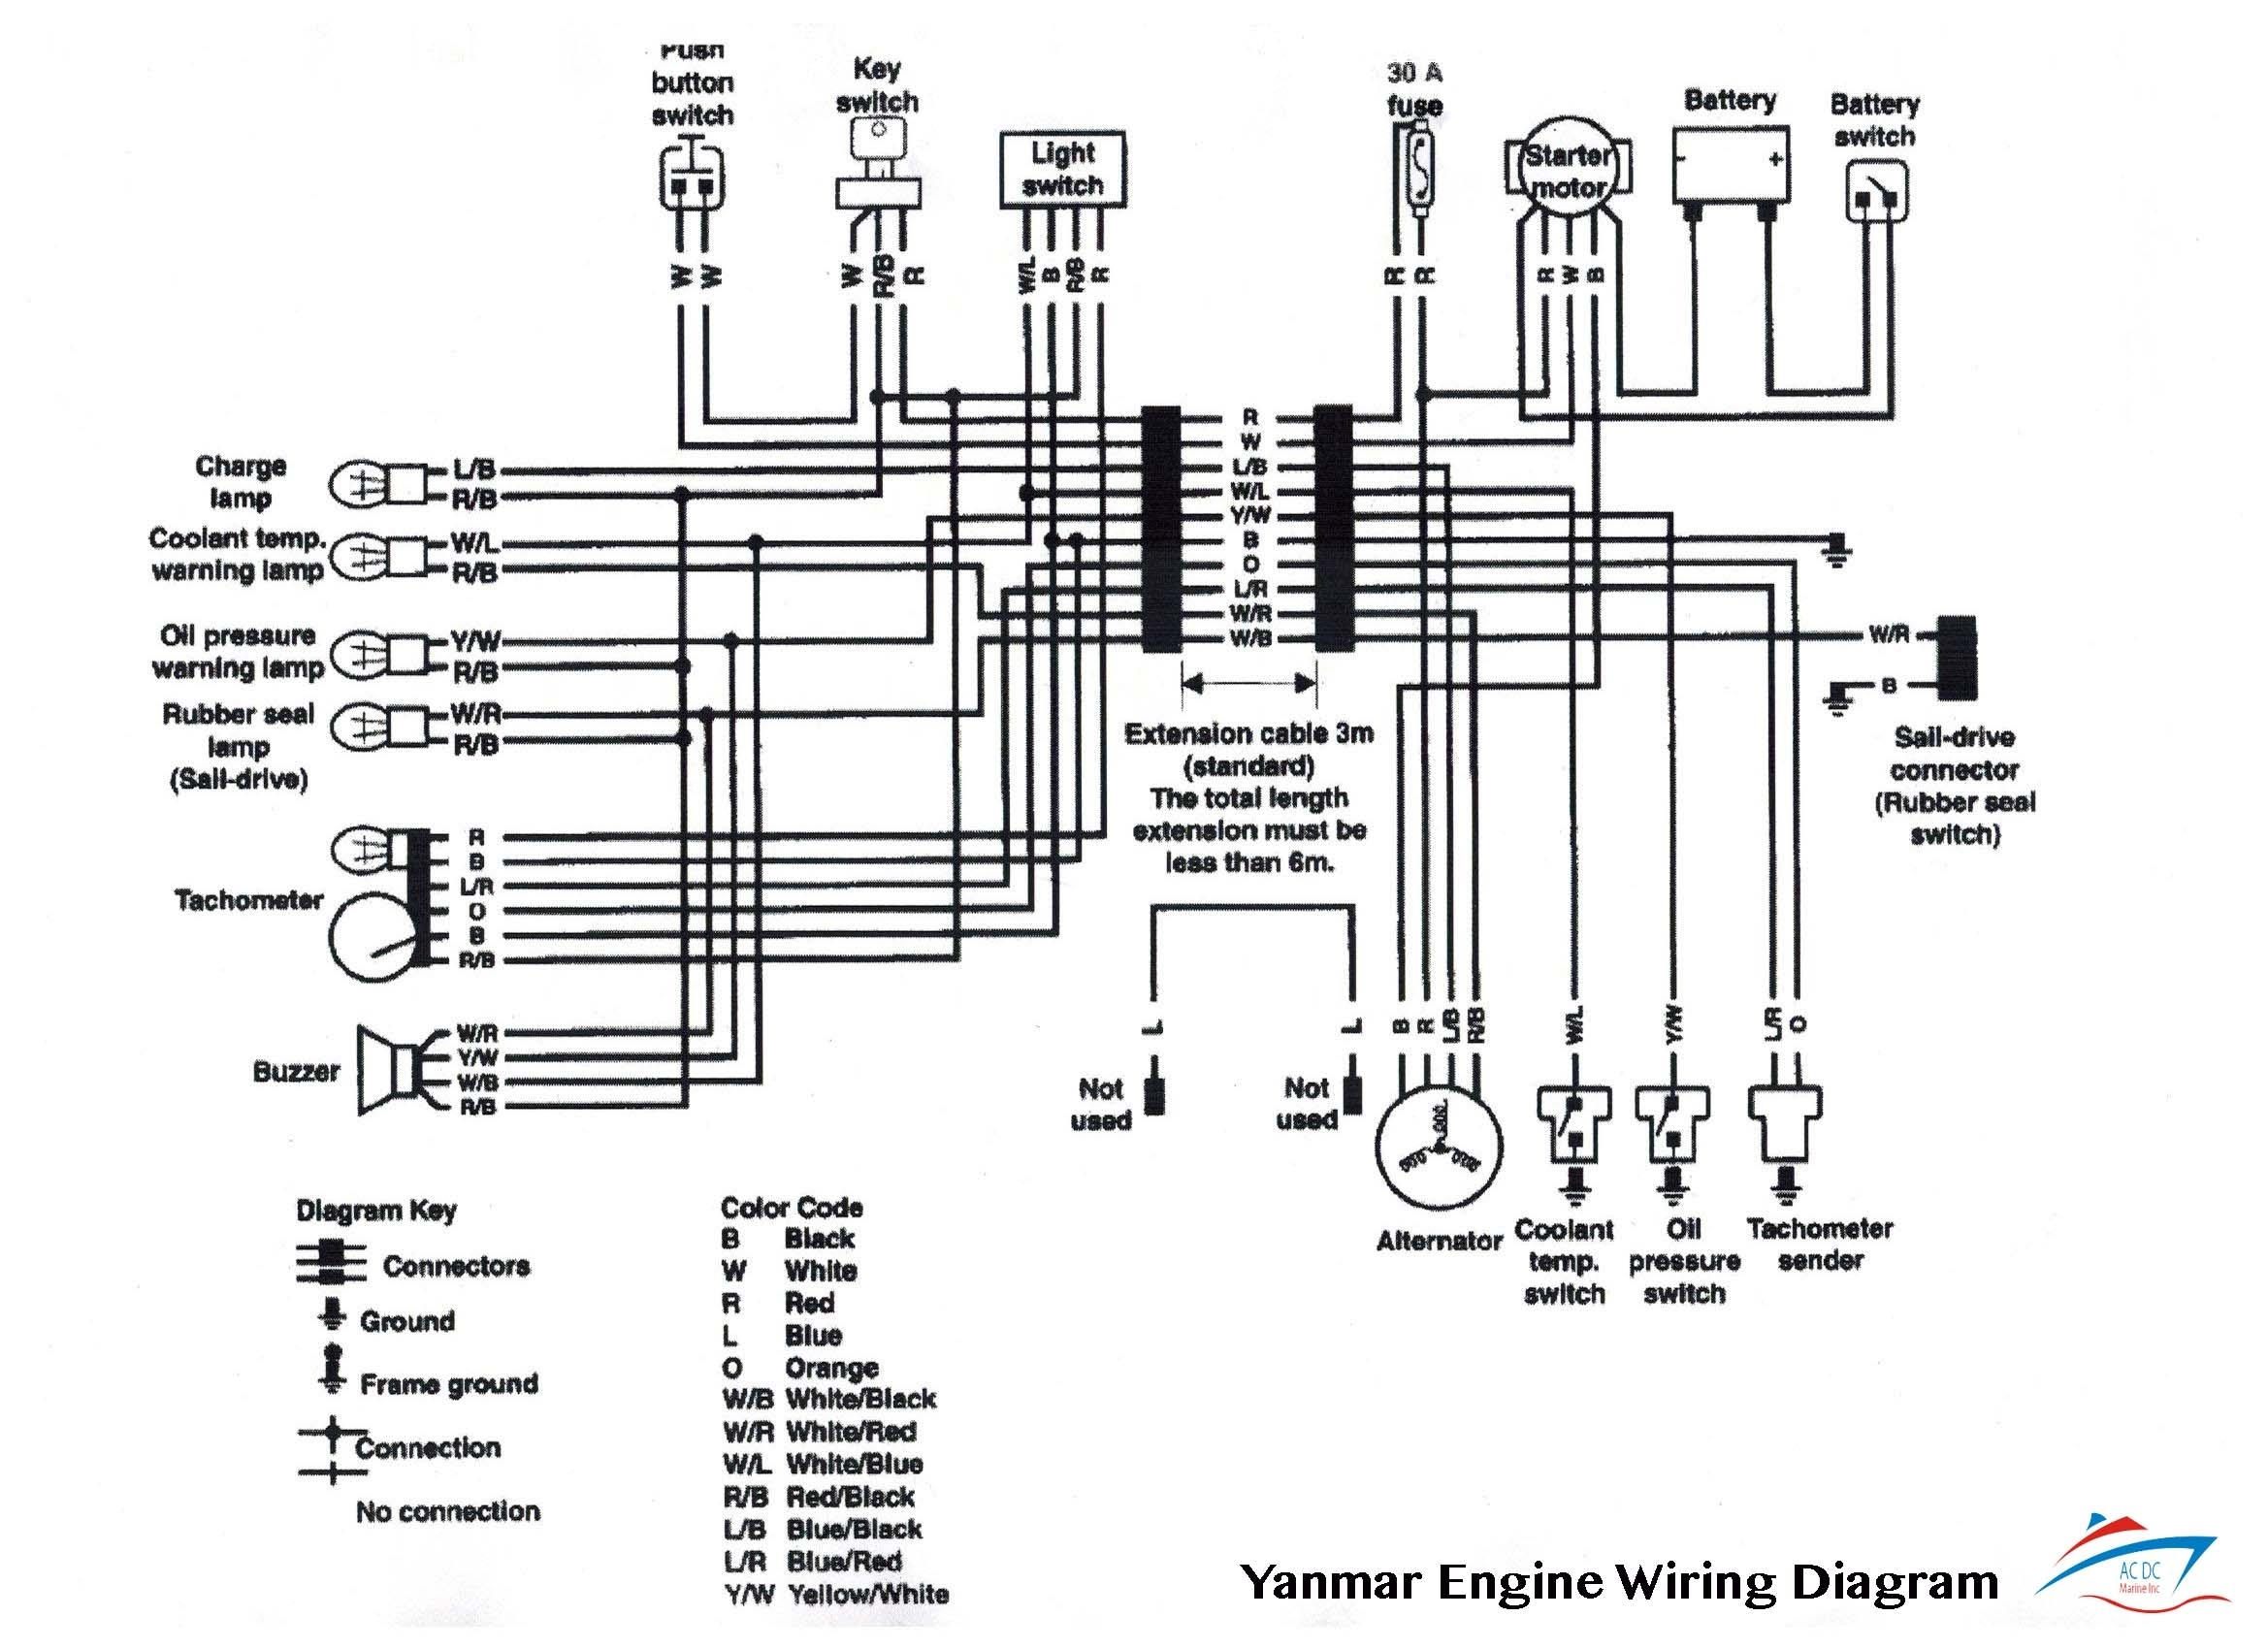 Yanmar Generator Wiring Diagram Good 1st Power Commander V Todays Rh 7 15 1813weddingbarn Com Alternator